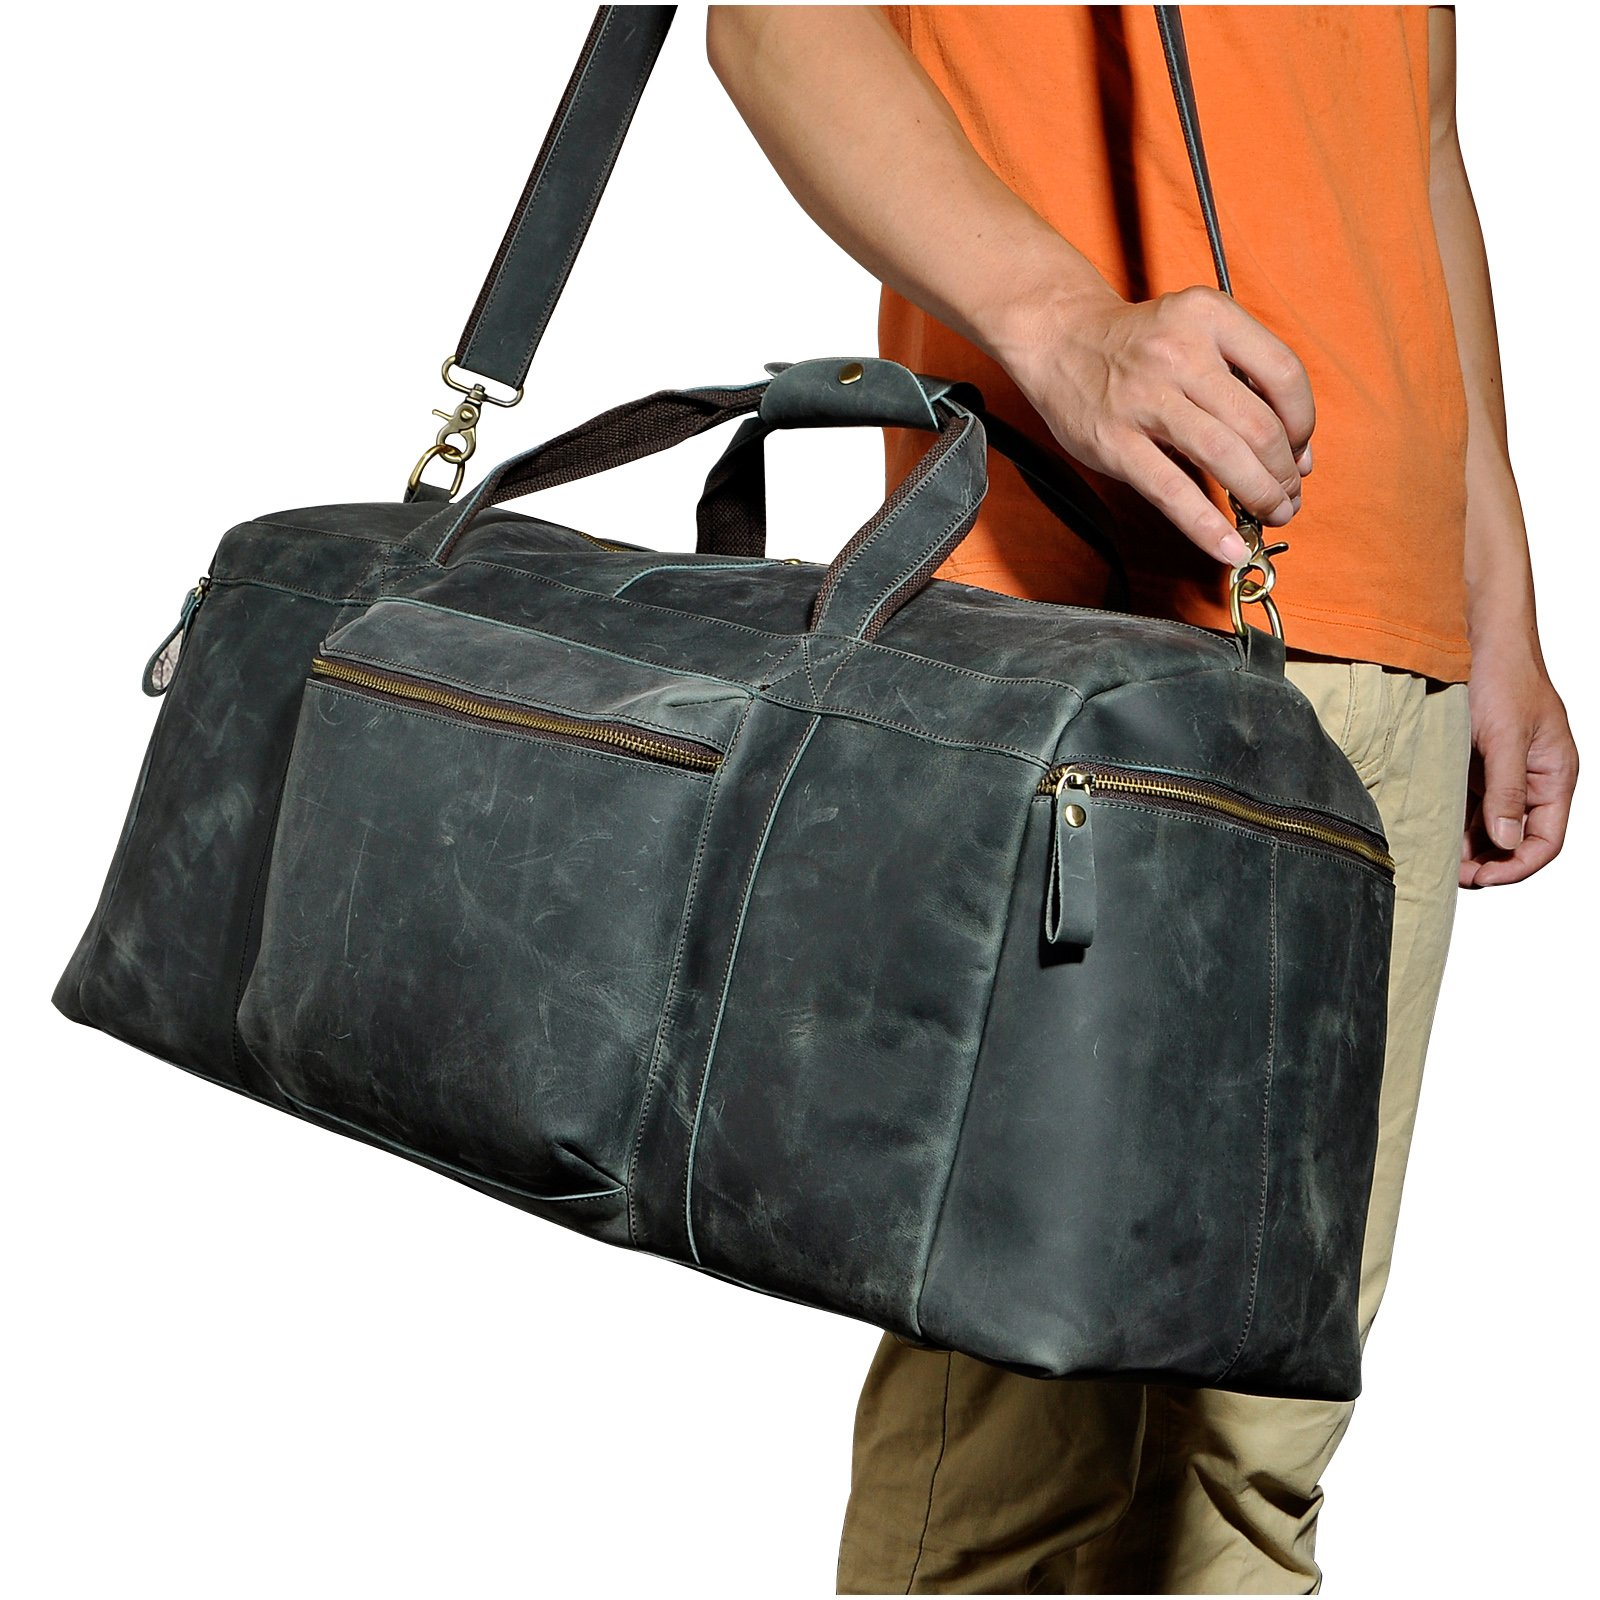 Le'aokuu Mens Genuine Crazy Horse Leather Travel Luggage Duffle Gym Tote Bags (Brown)